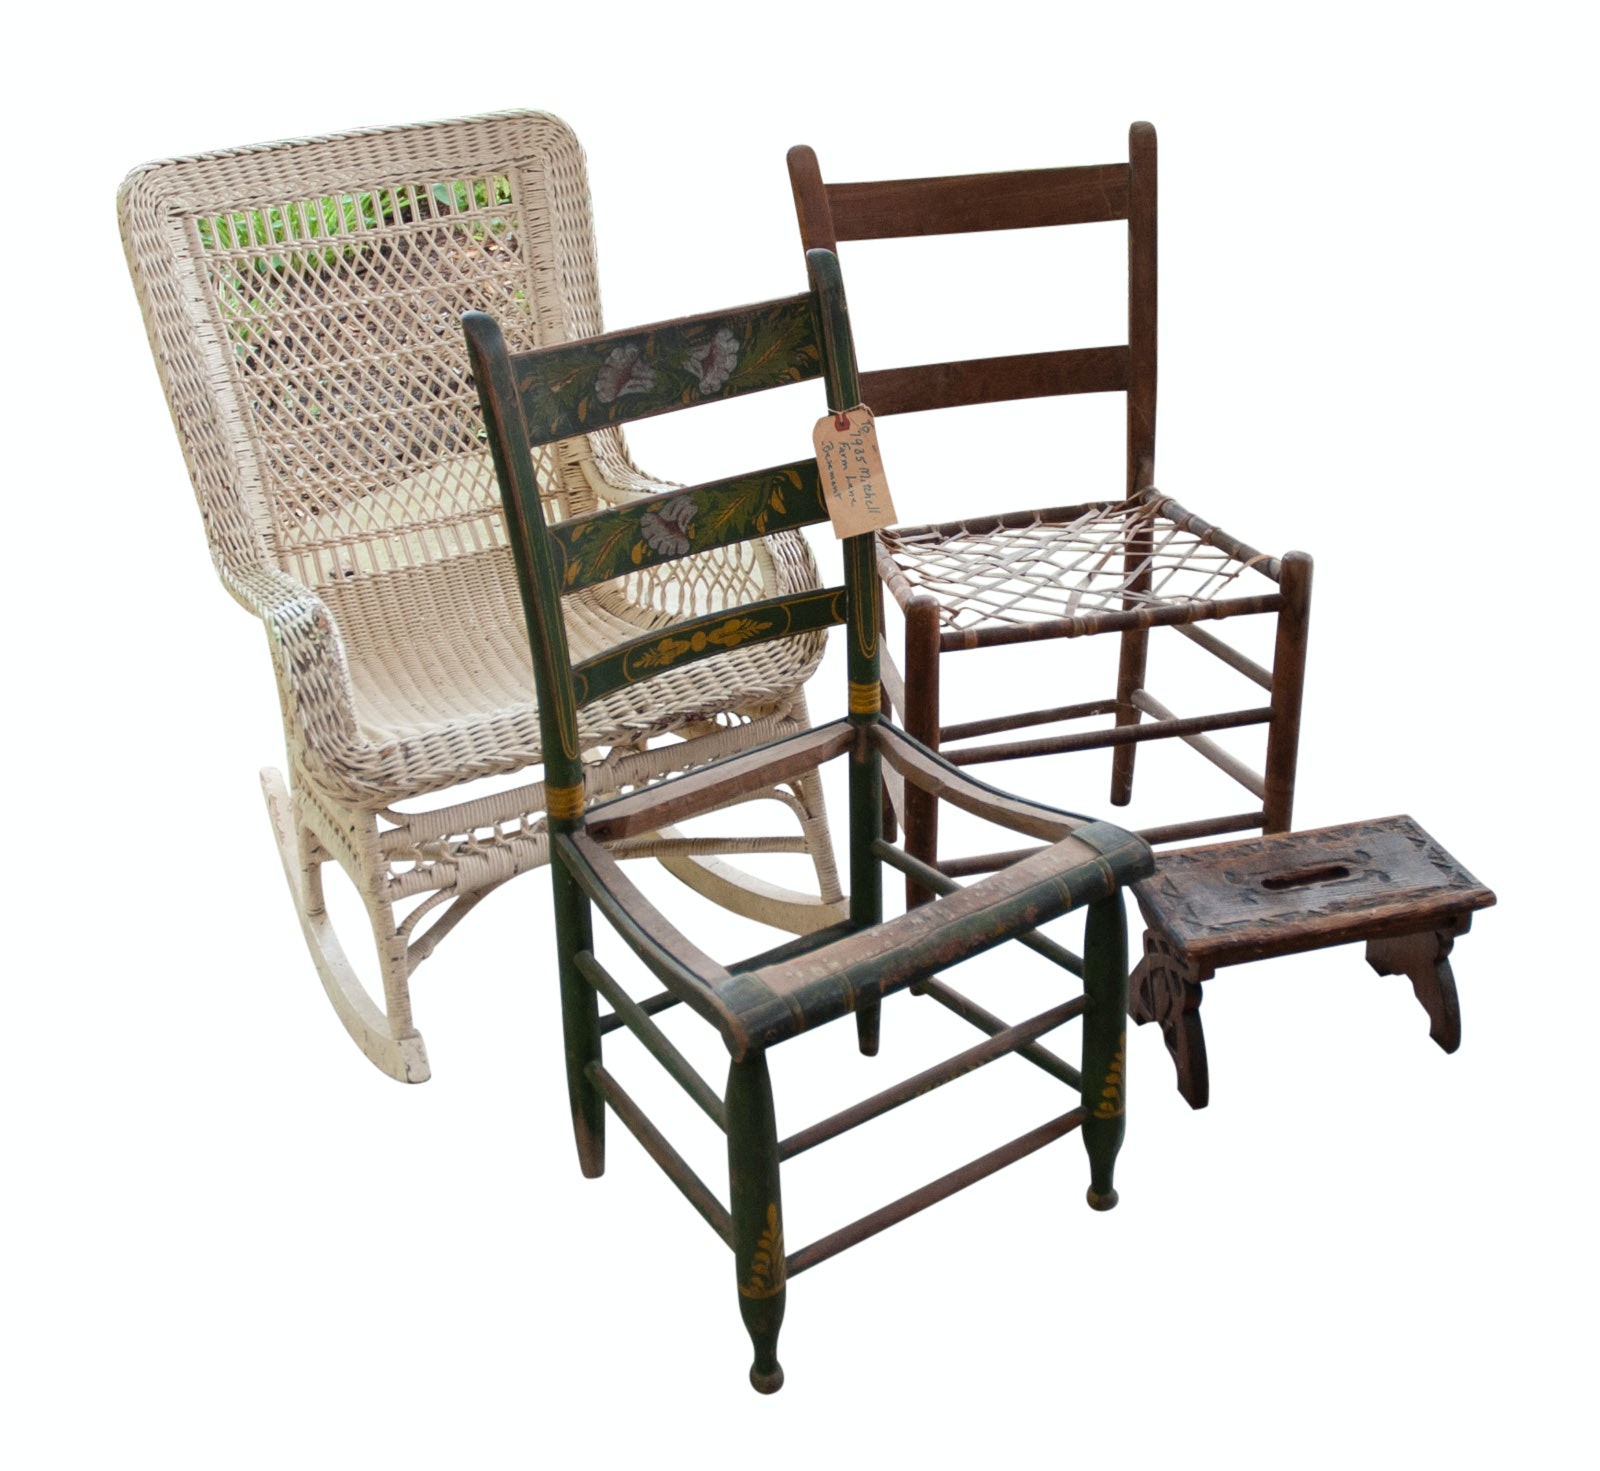 Vintage and Antique Assortment of Project Chairs